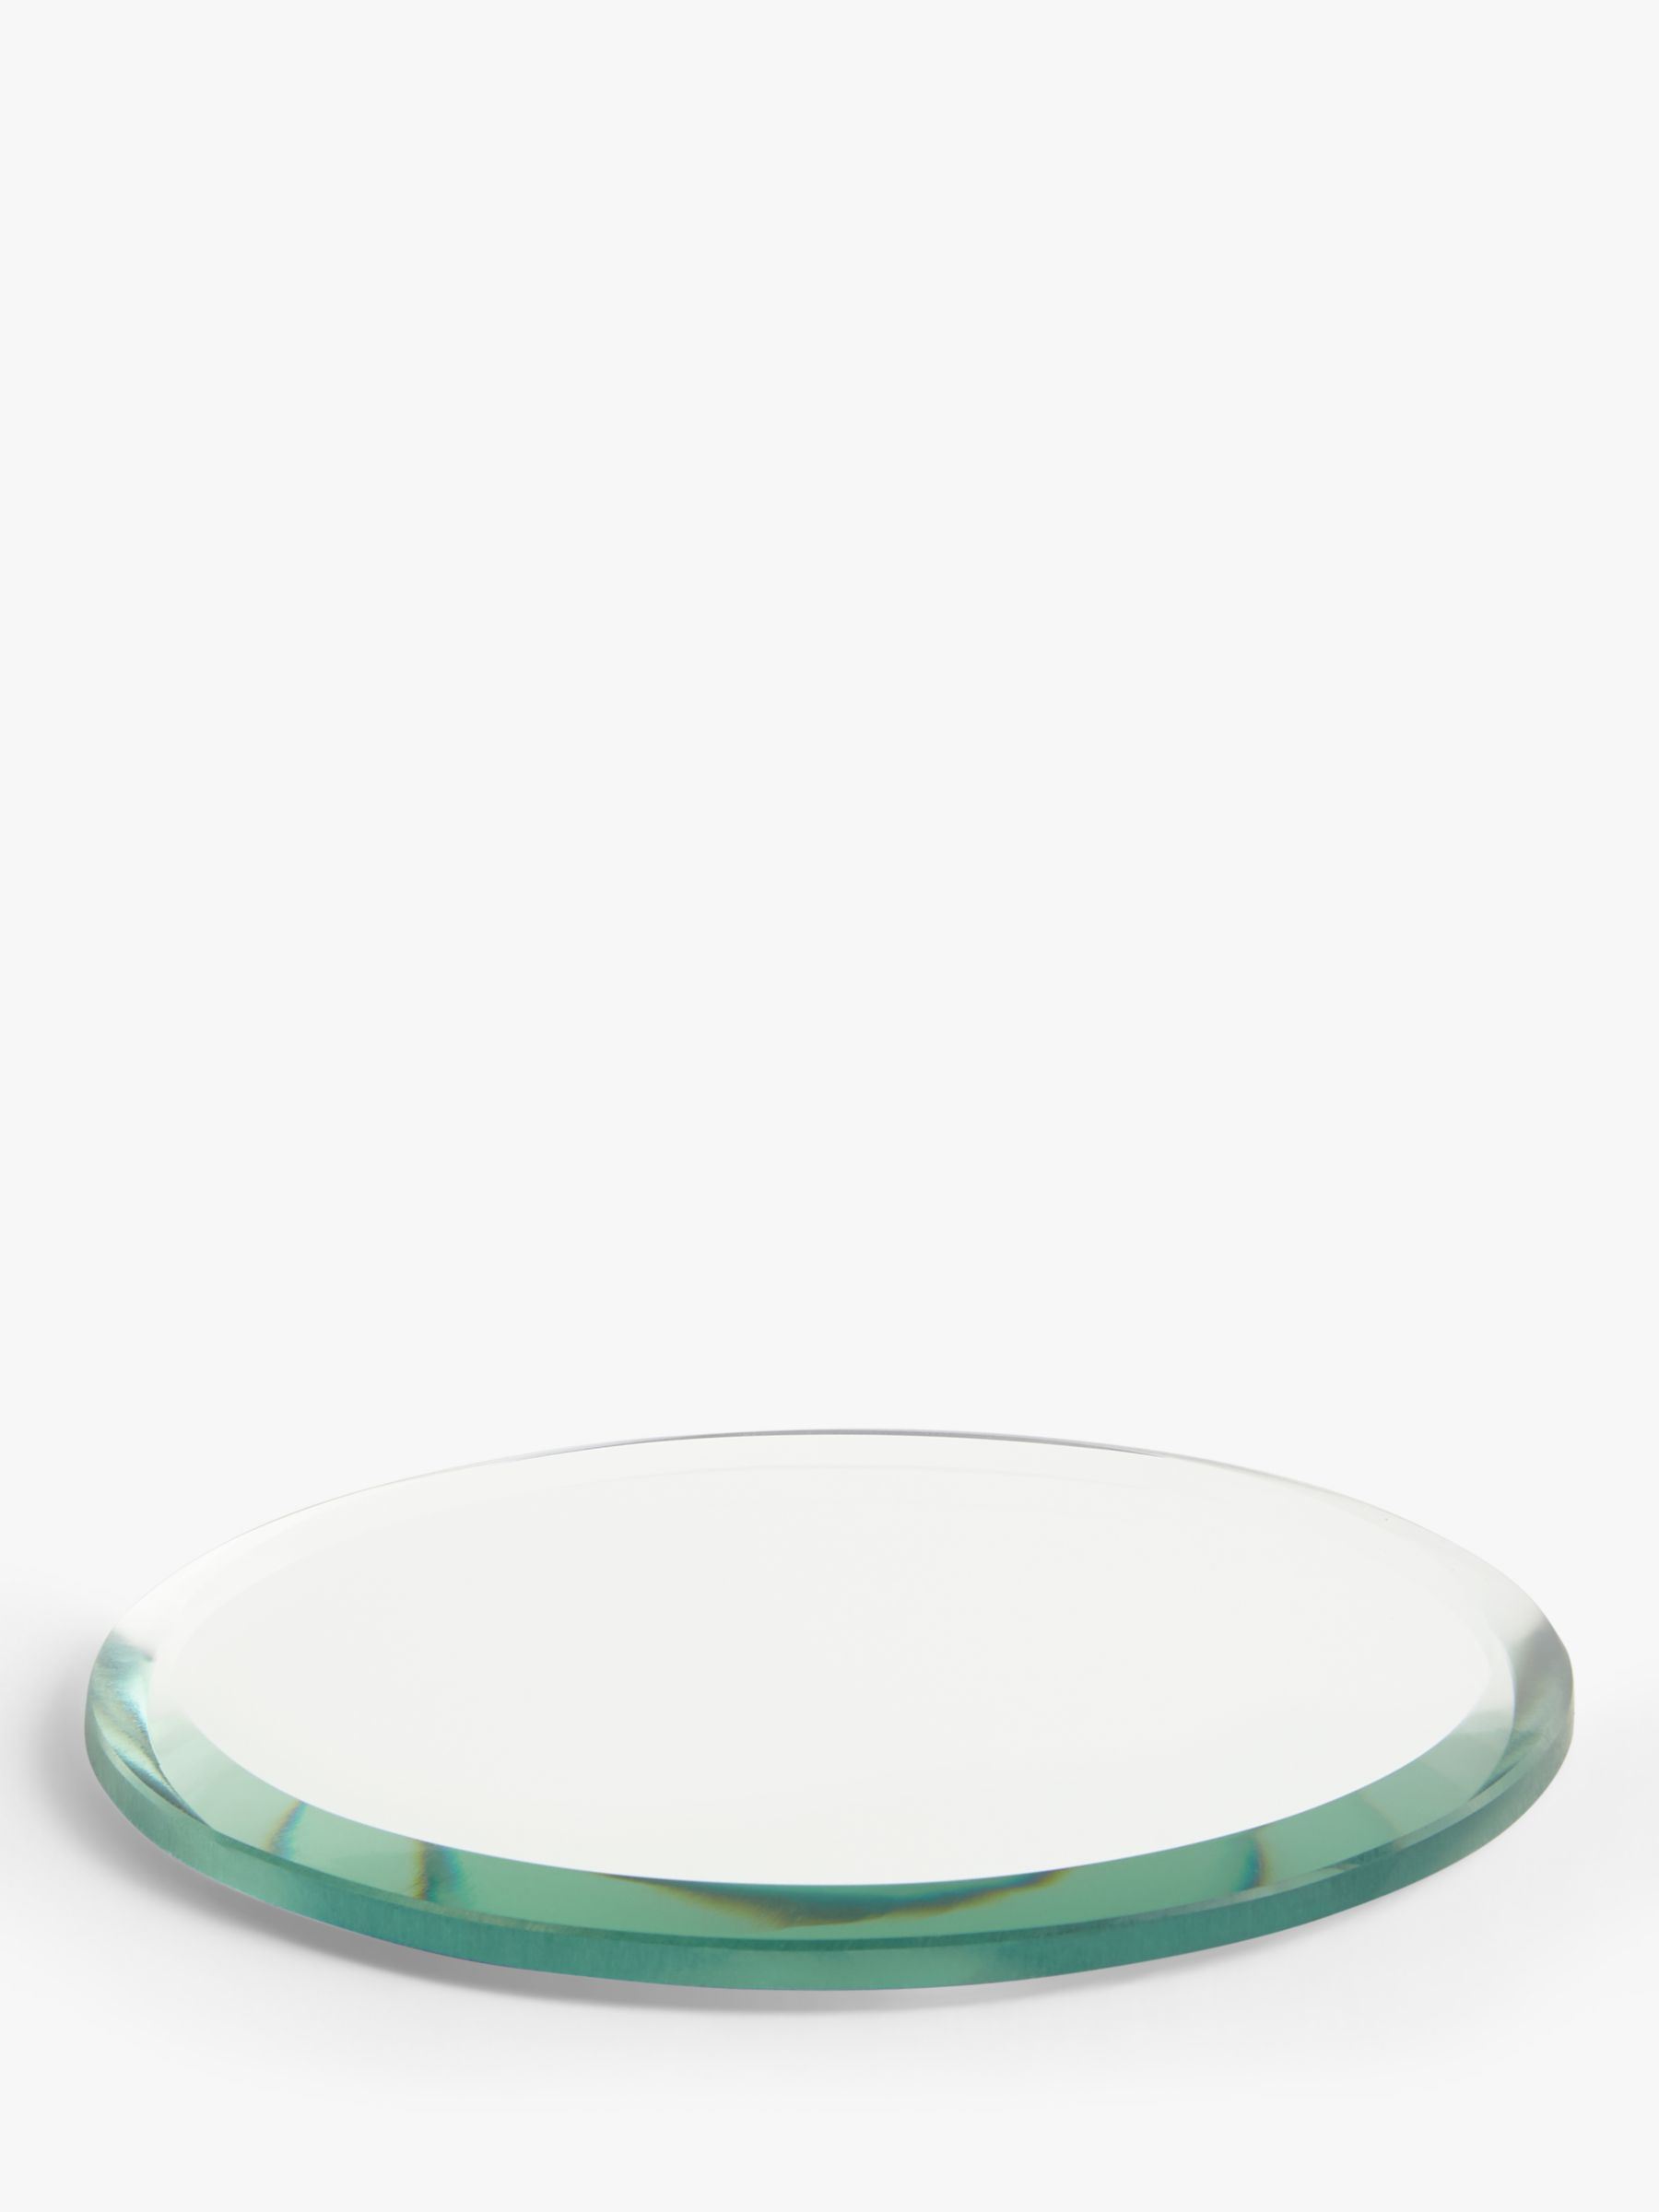 John Lewis & Partners Mirror Candle Plate, 10cm